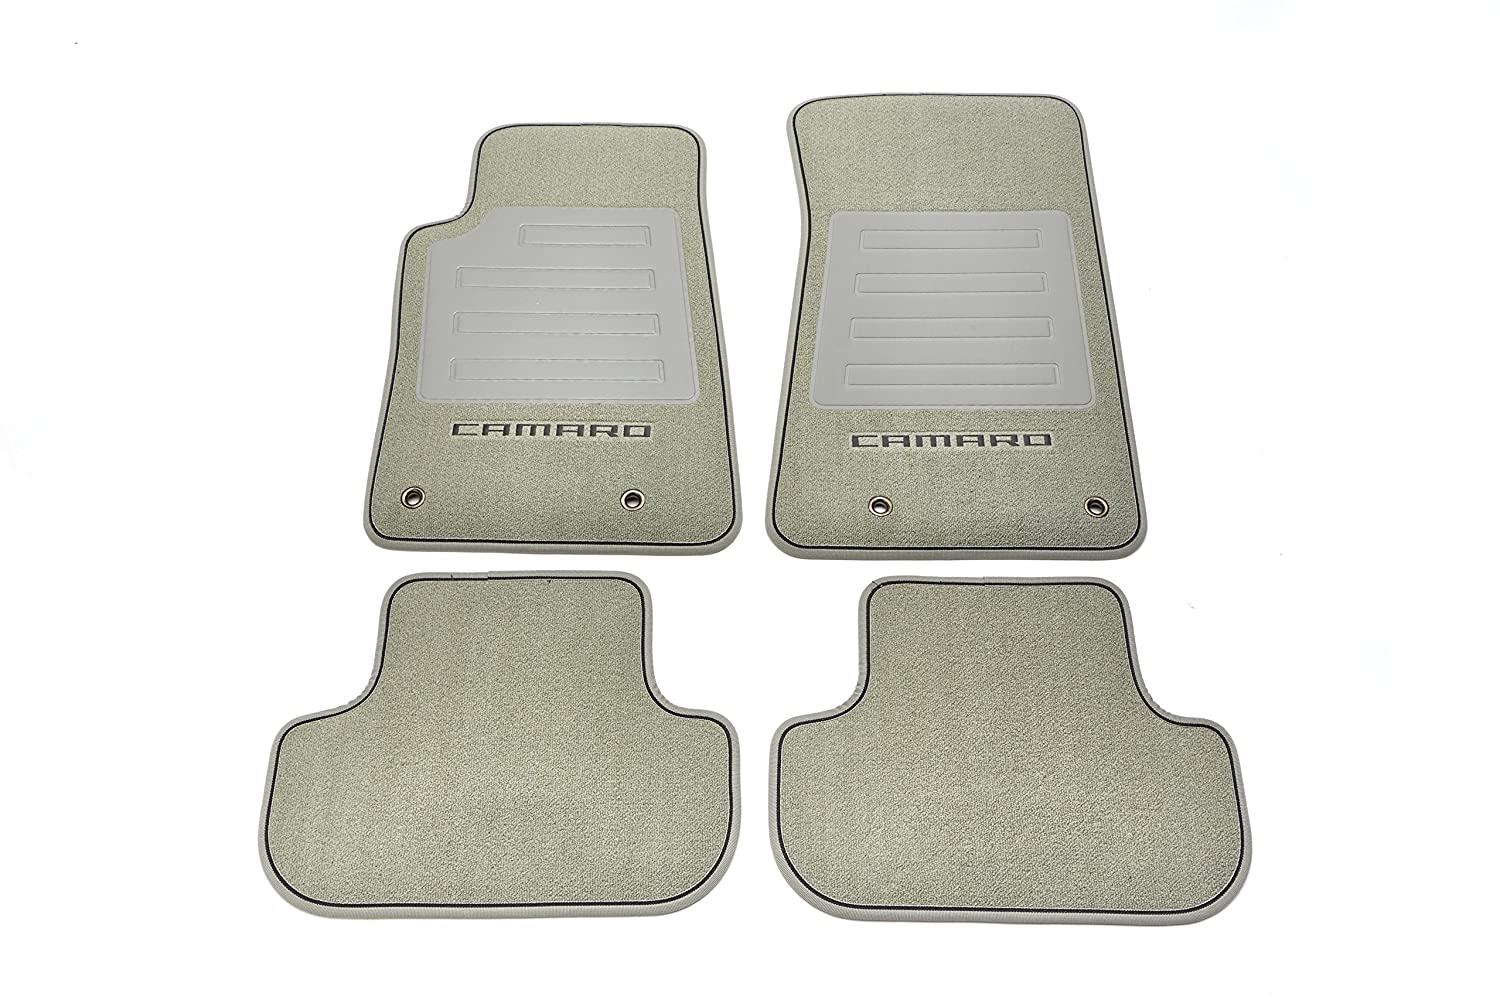 GM Accessories 92219641 Front and Rear Carpeted Floor Mats in Light Gray with Camaro Logo and Black Edging General Motors